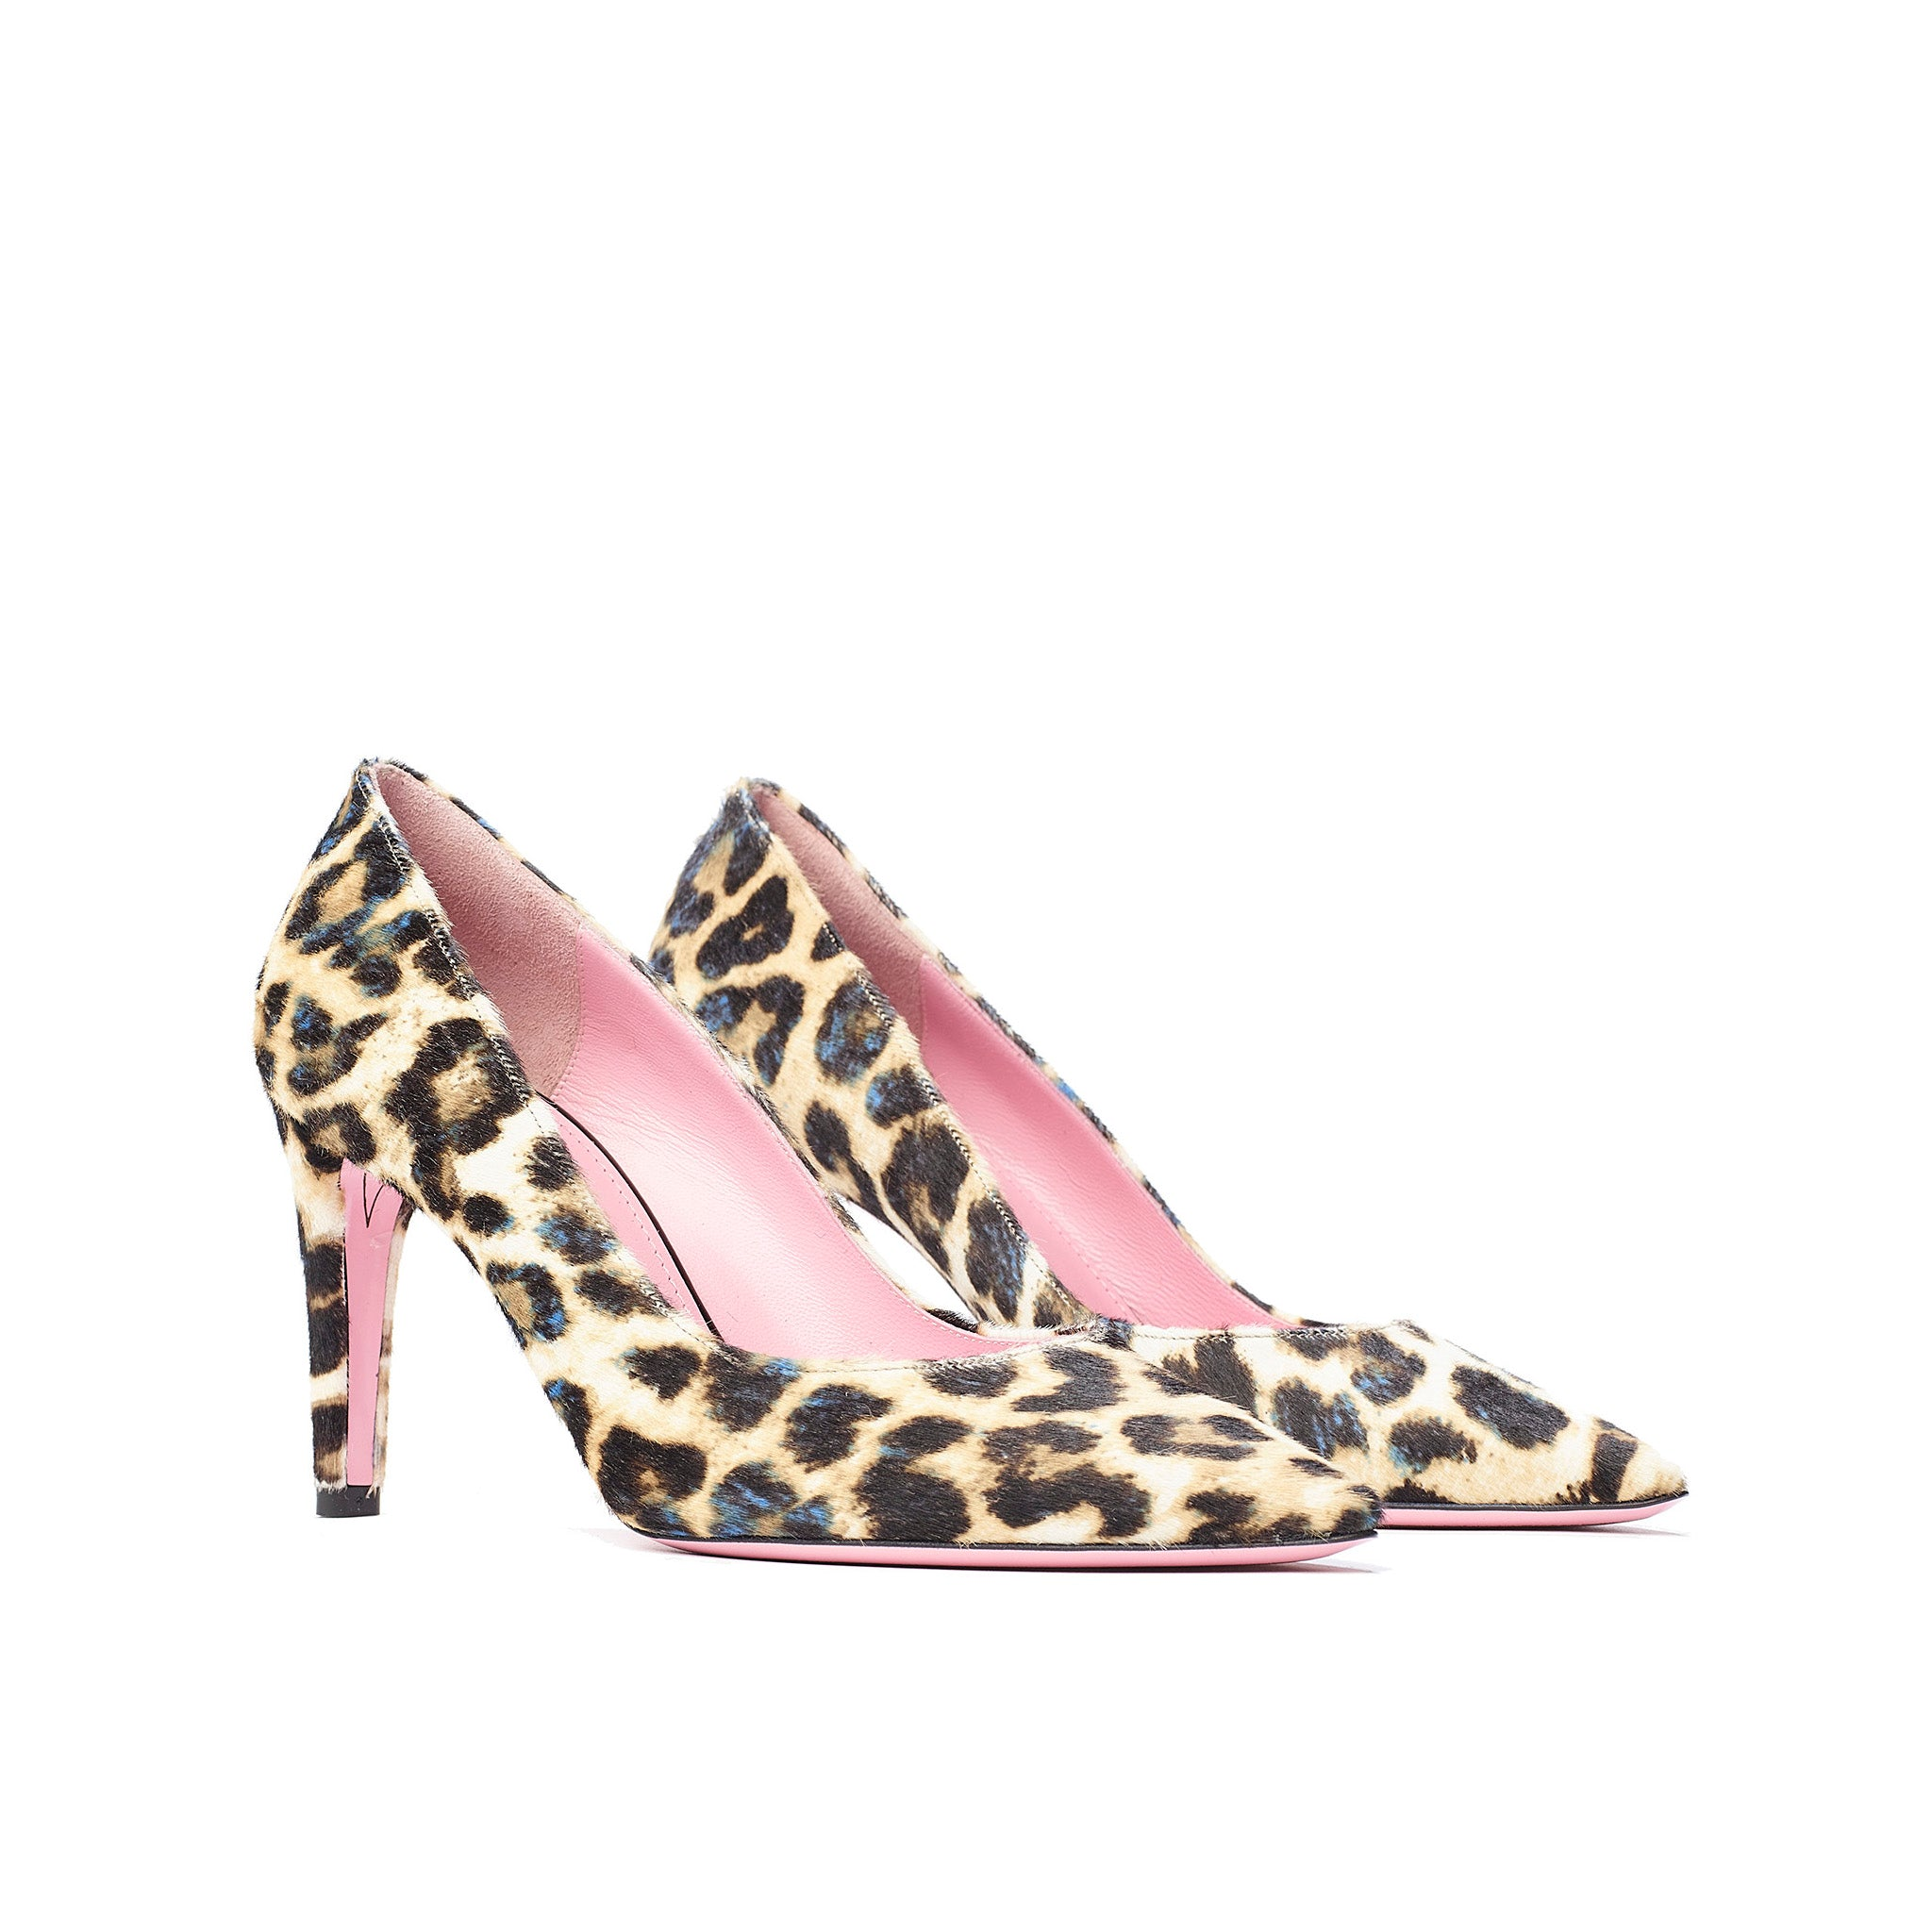 Phare classic pump in leopard pony hair 3/4 view